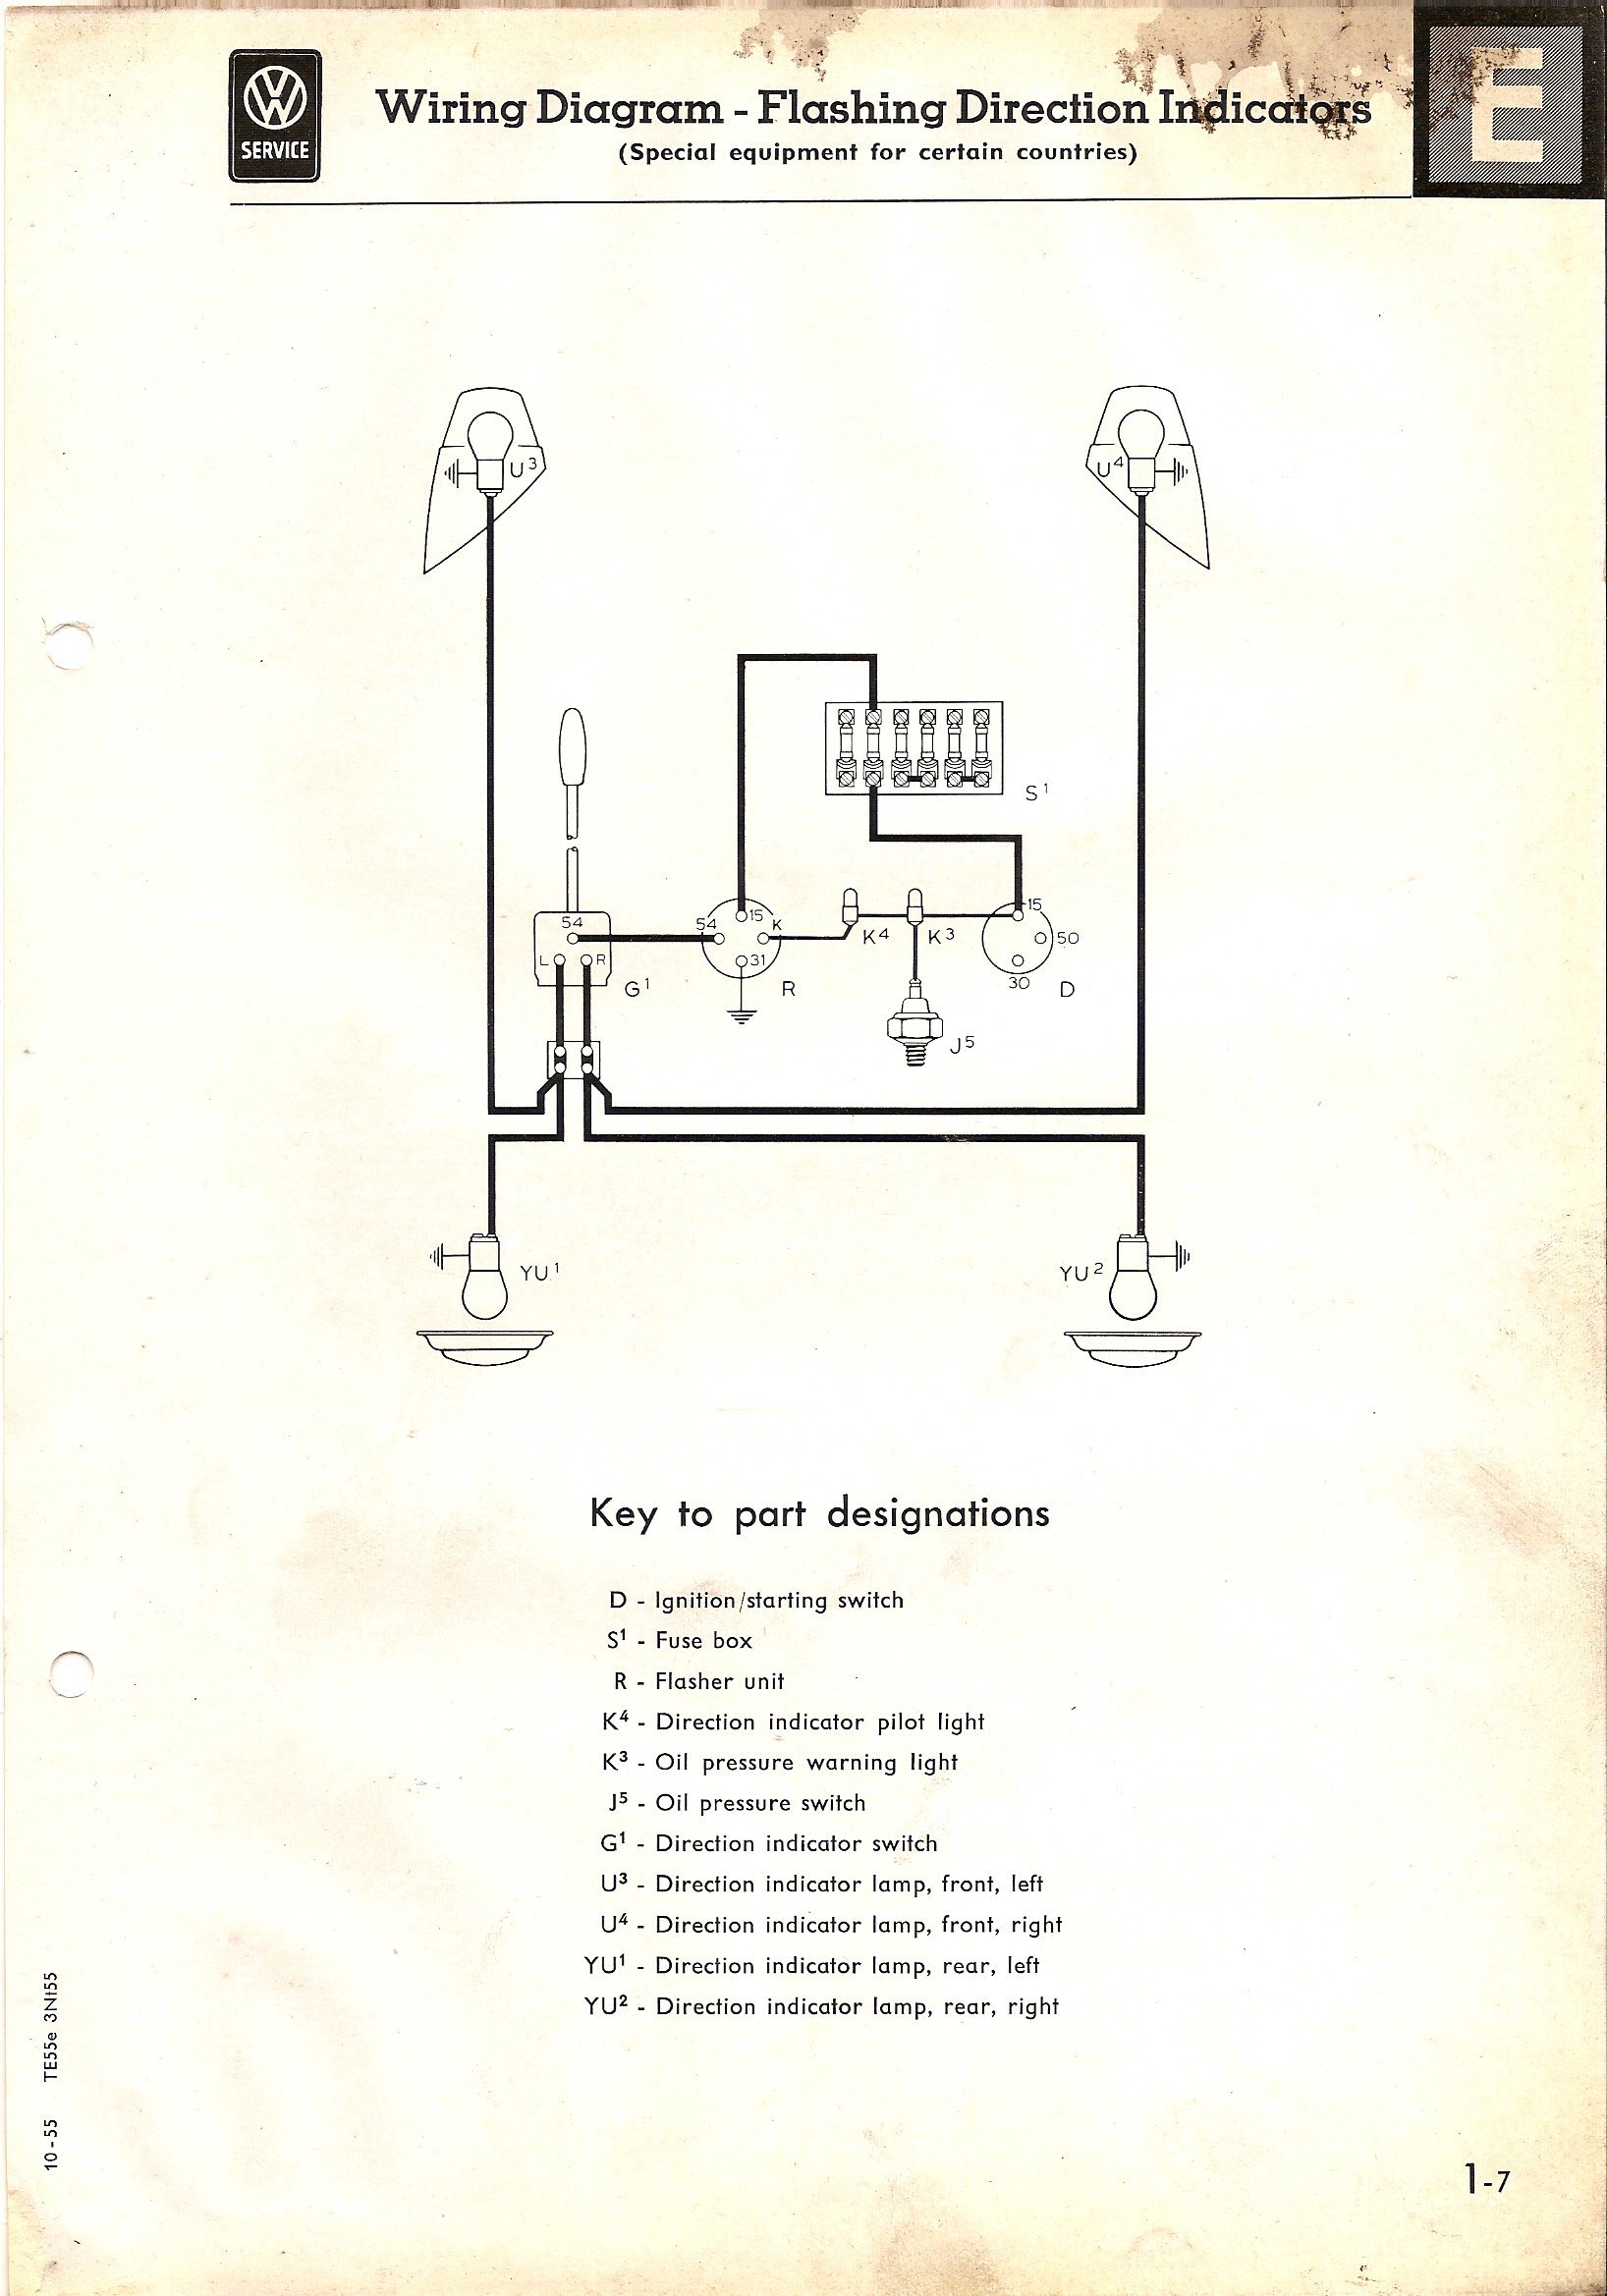 1963 Vw Bus Wiring Diagram Starting Know About 1970 Camaro Haynes Thesamba Com Type 2 Diagrams Rh